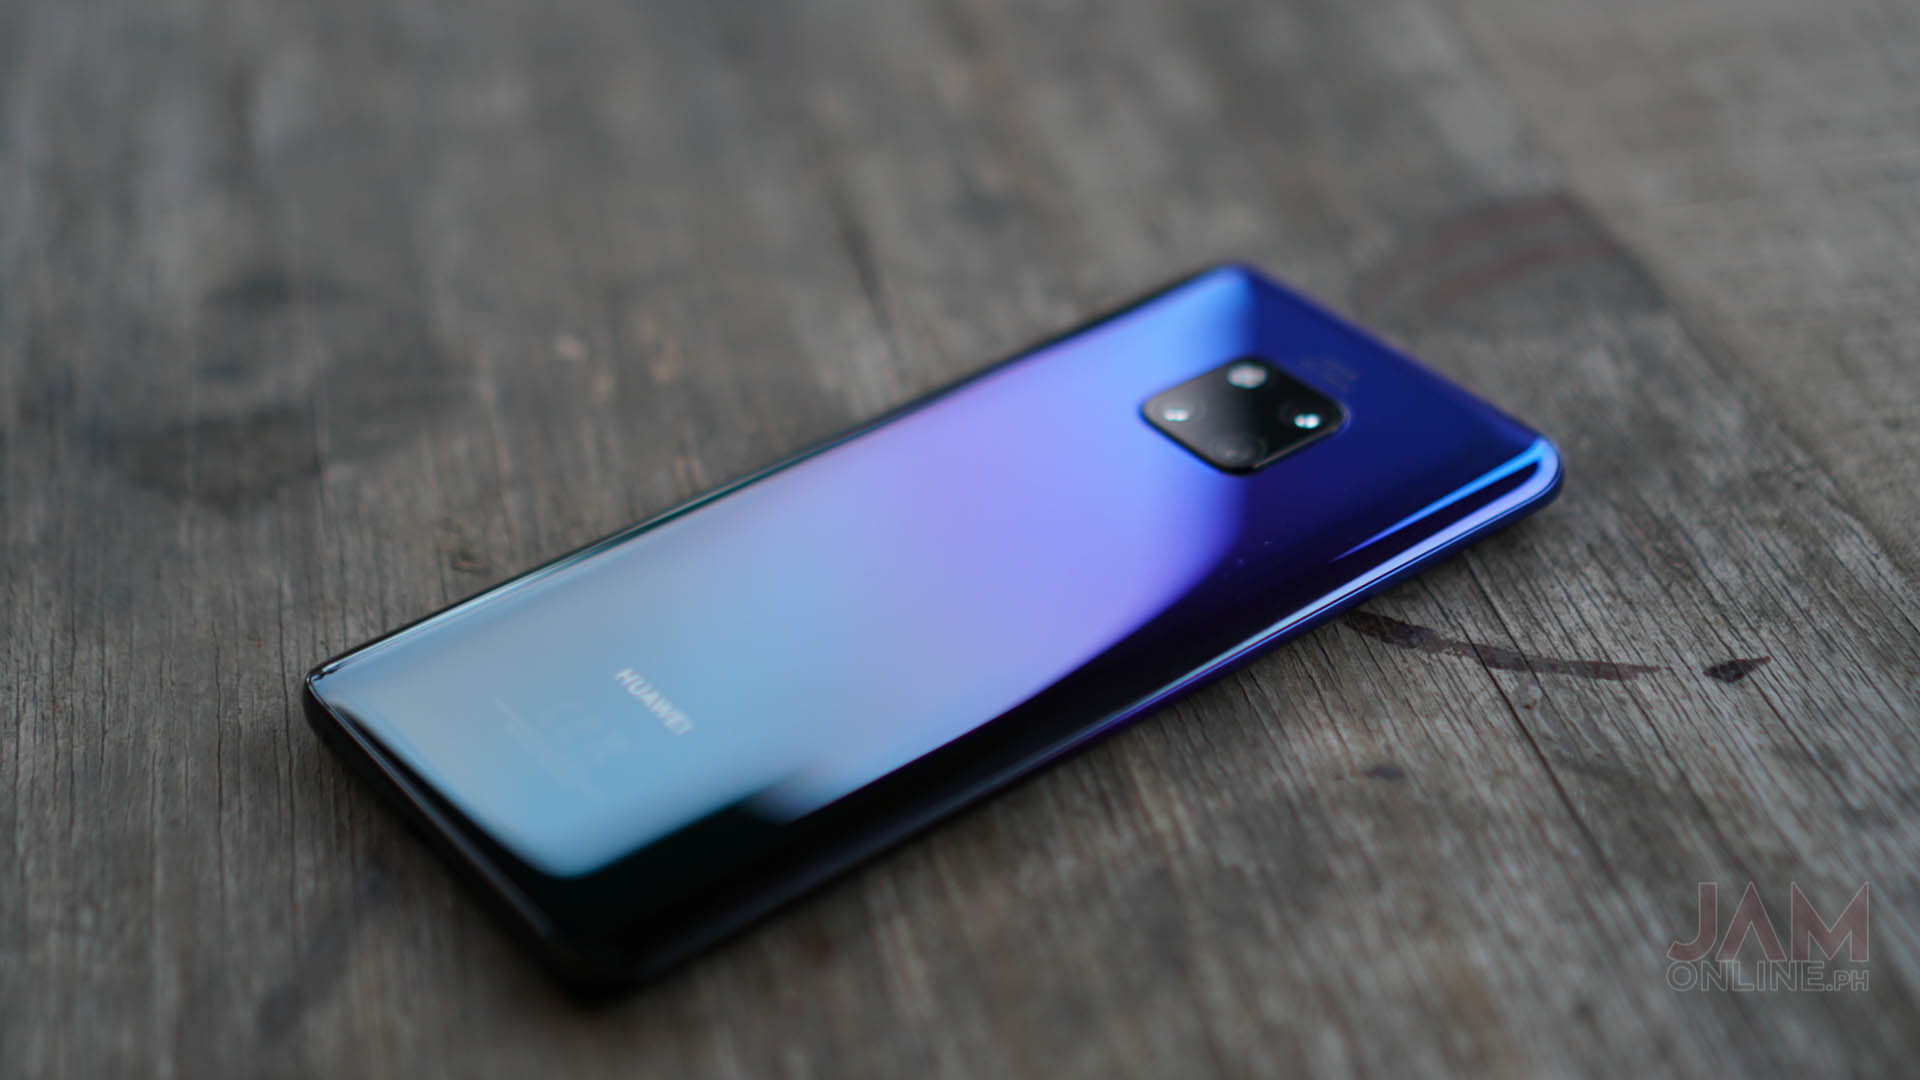 Huawei Mate 20 Pro Unboxing First Impressions Jam Online